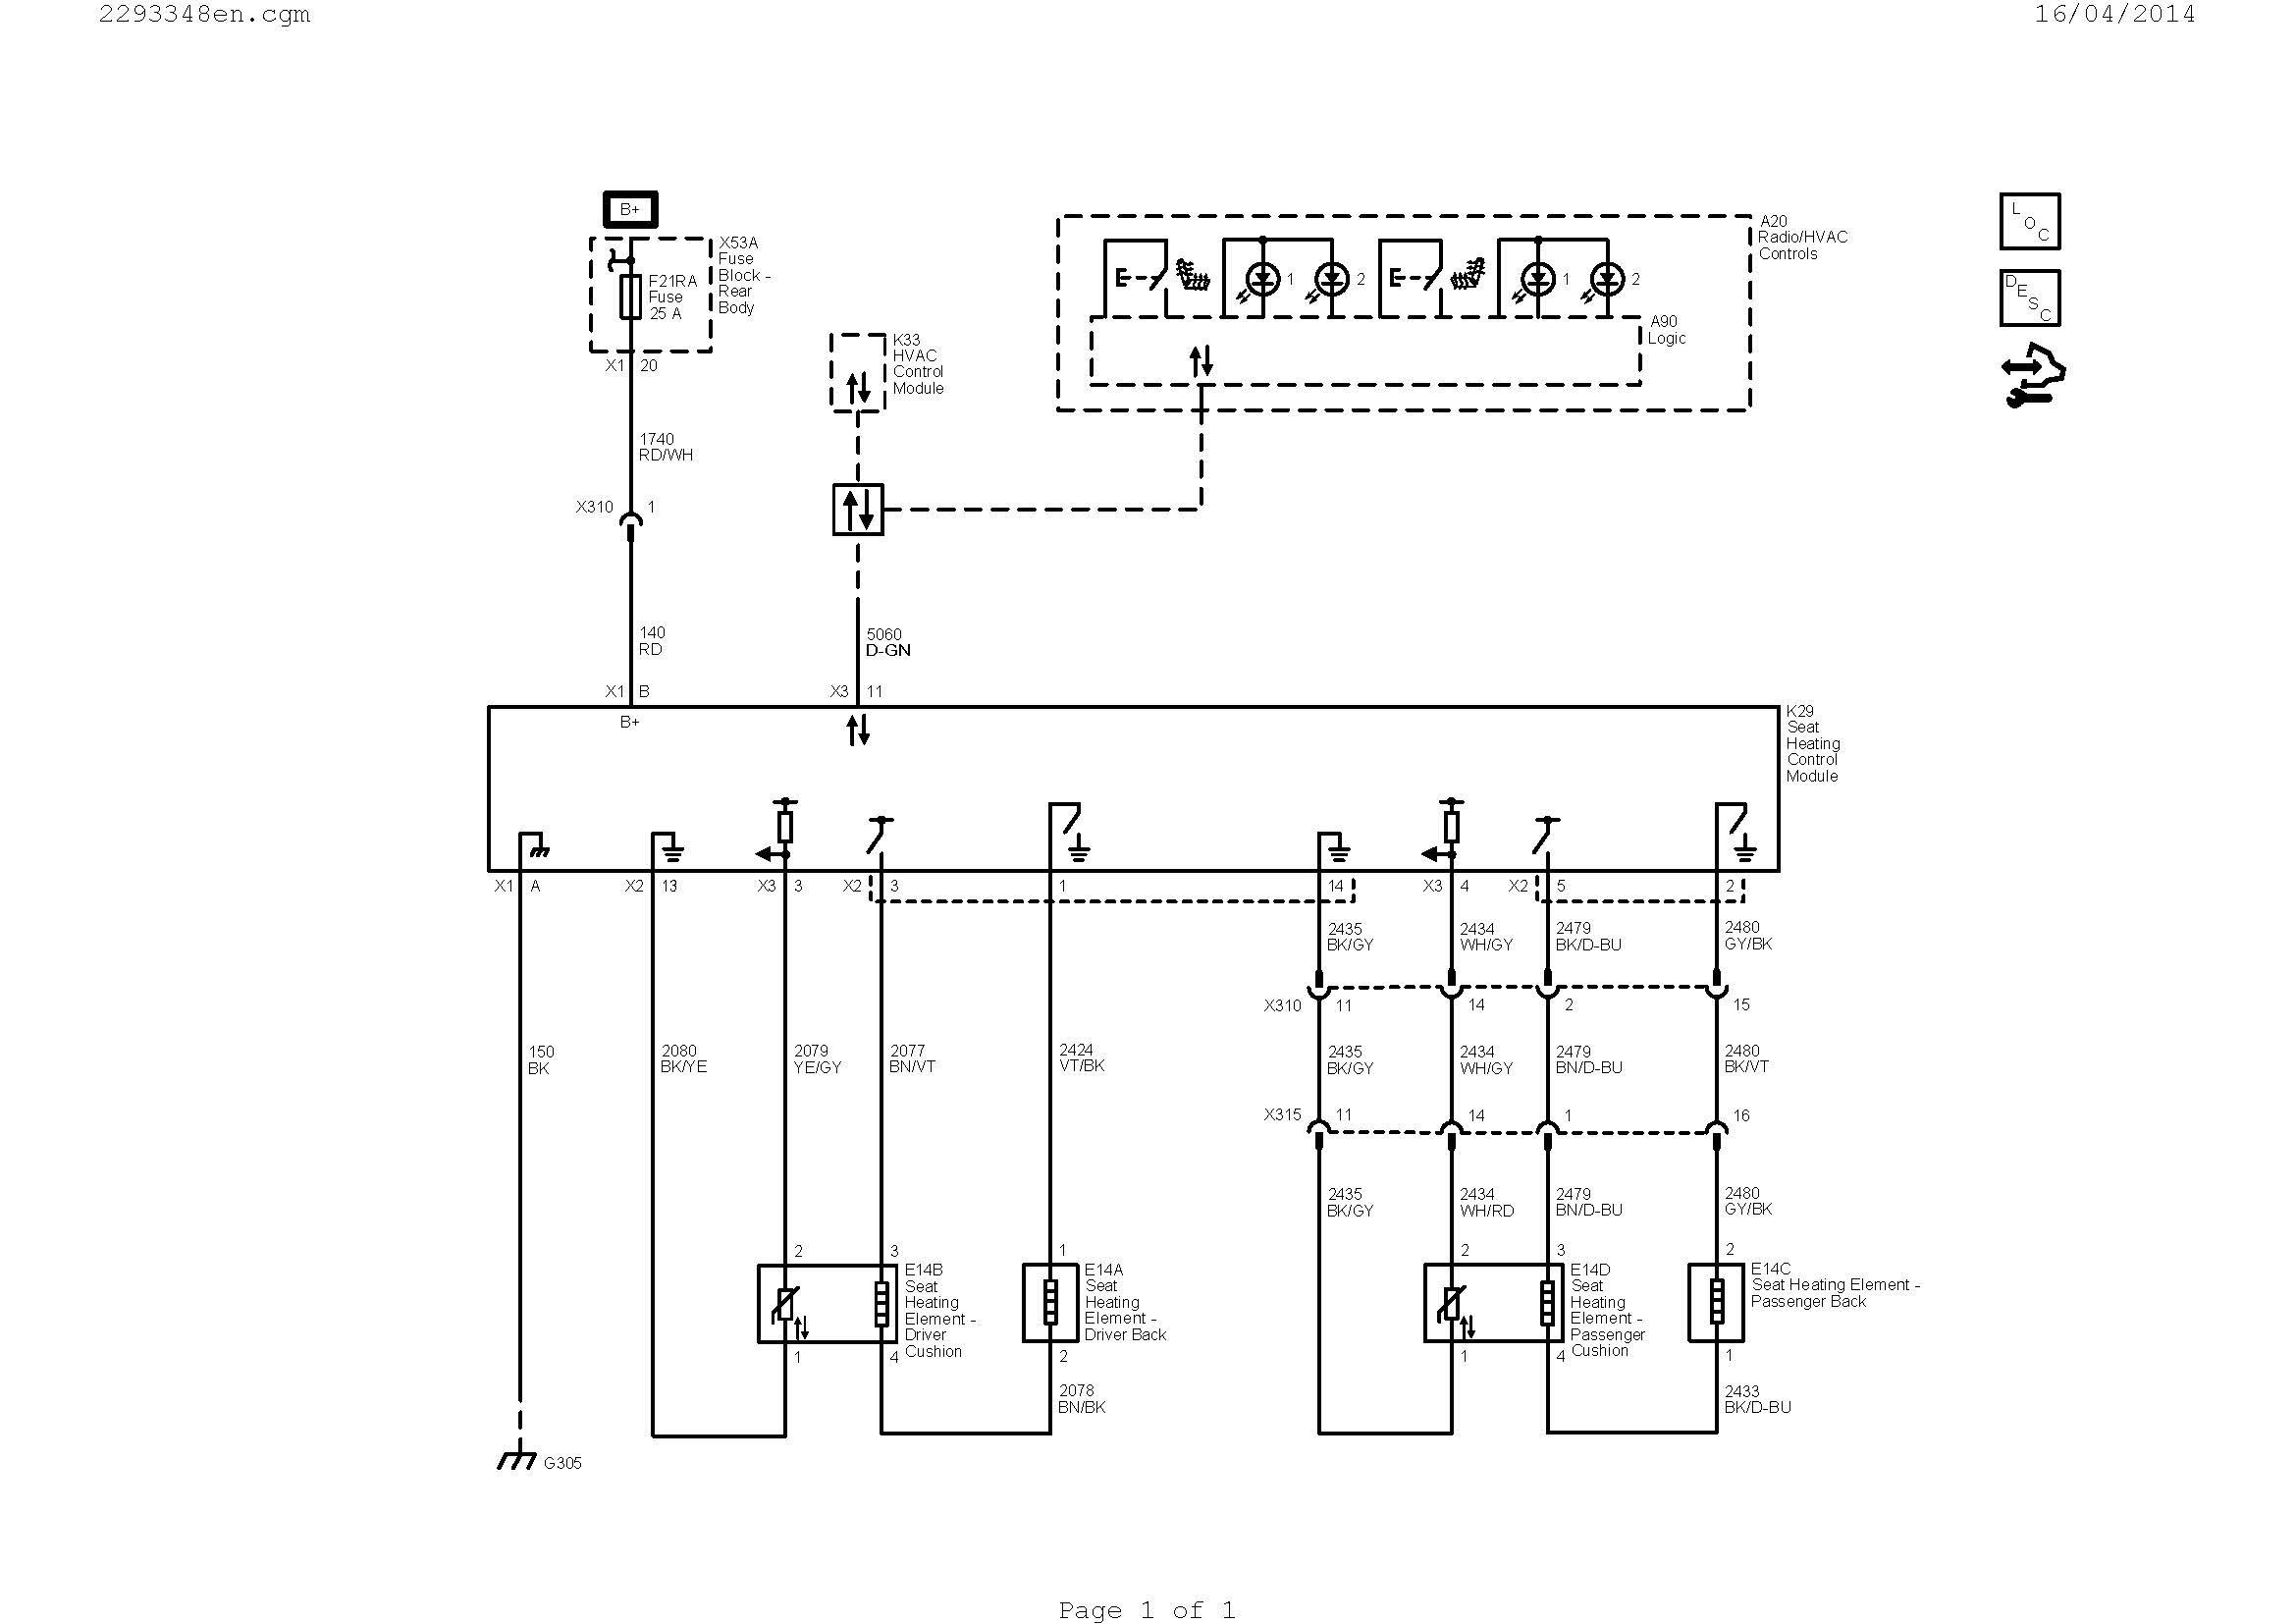 gas furnace wiring diagram Download-Gas Fired Furnace Wiring Diagram Inspirationa tower Ac Wiring Diagram New Hvac Diagram Best Hvac Diagram 2-q